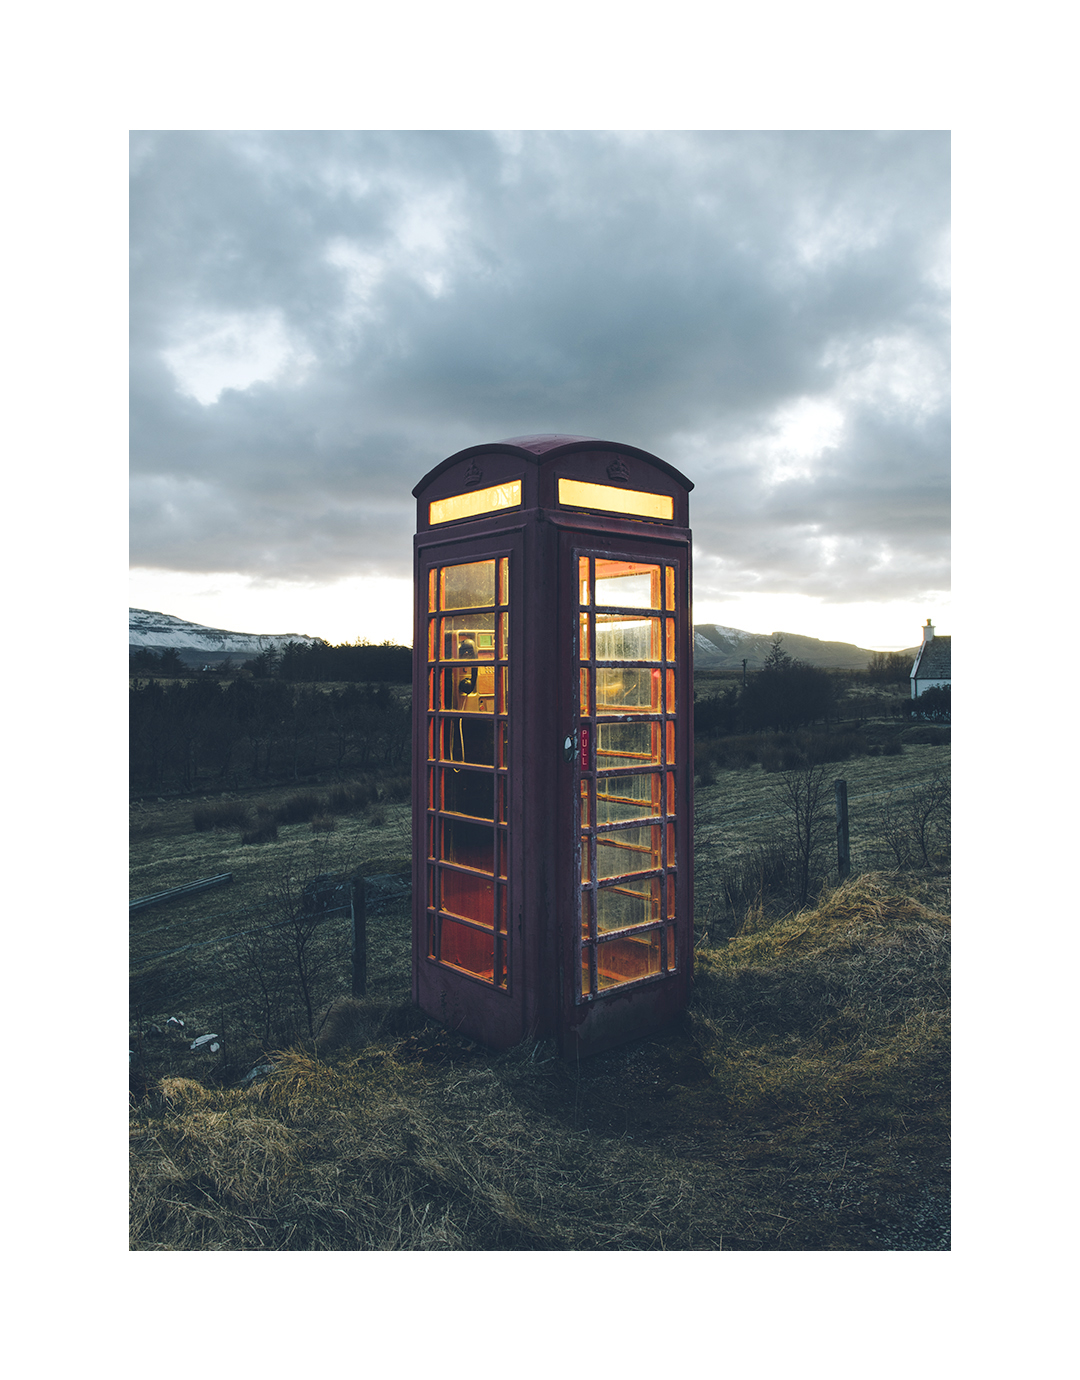 Phone booth, Isle of Skye, Scotland